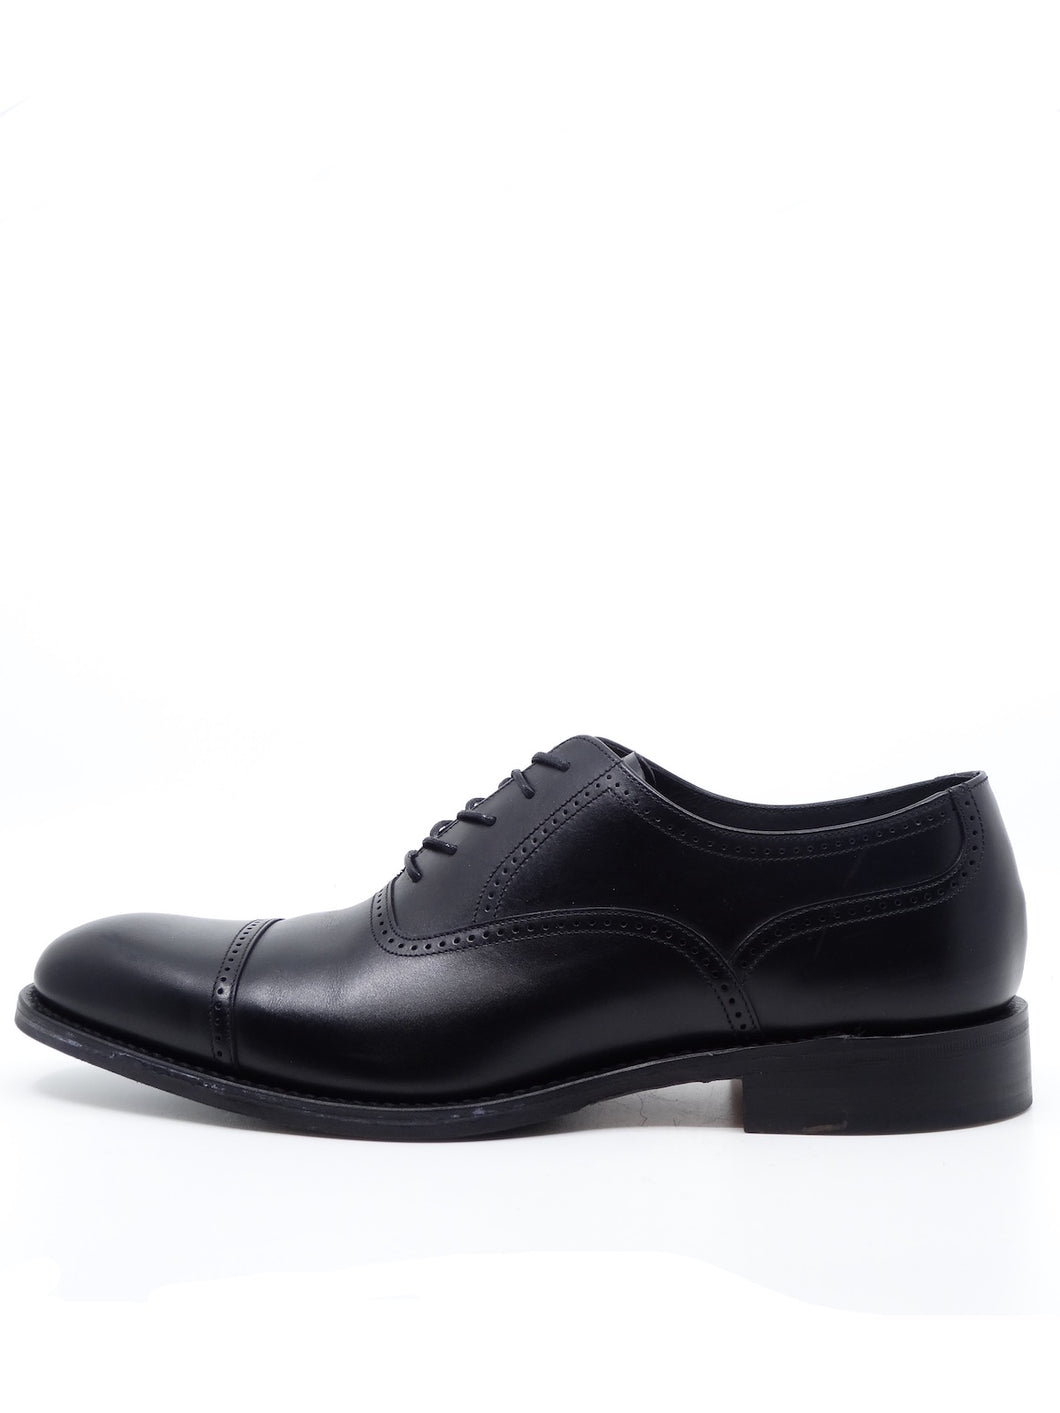 Loakes Ledbury Black Leather